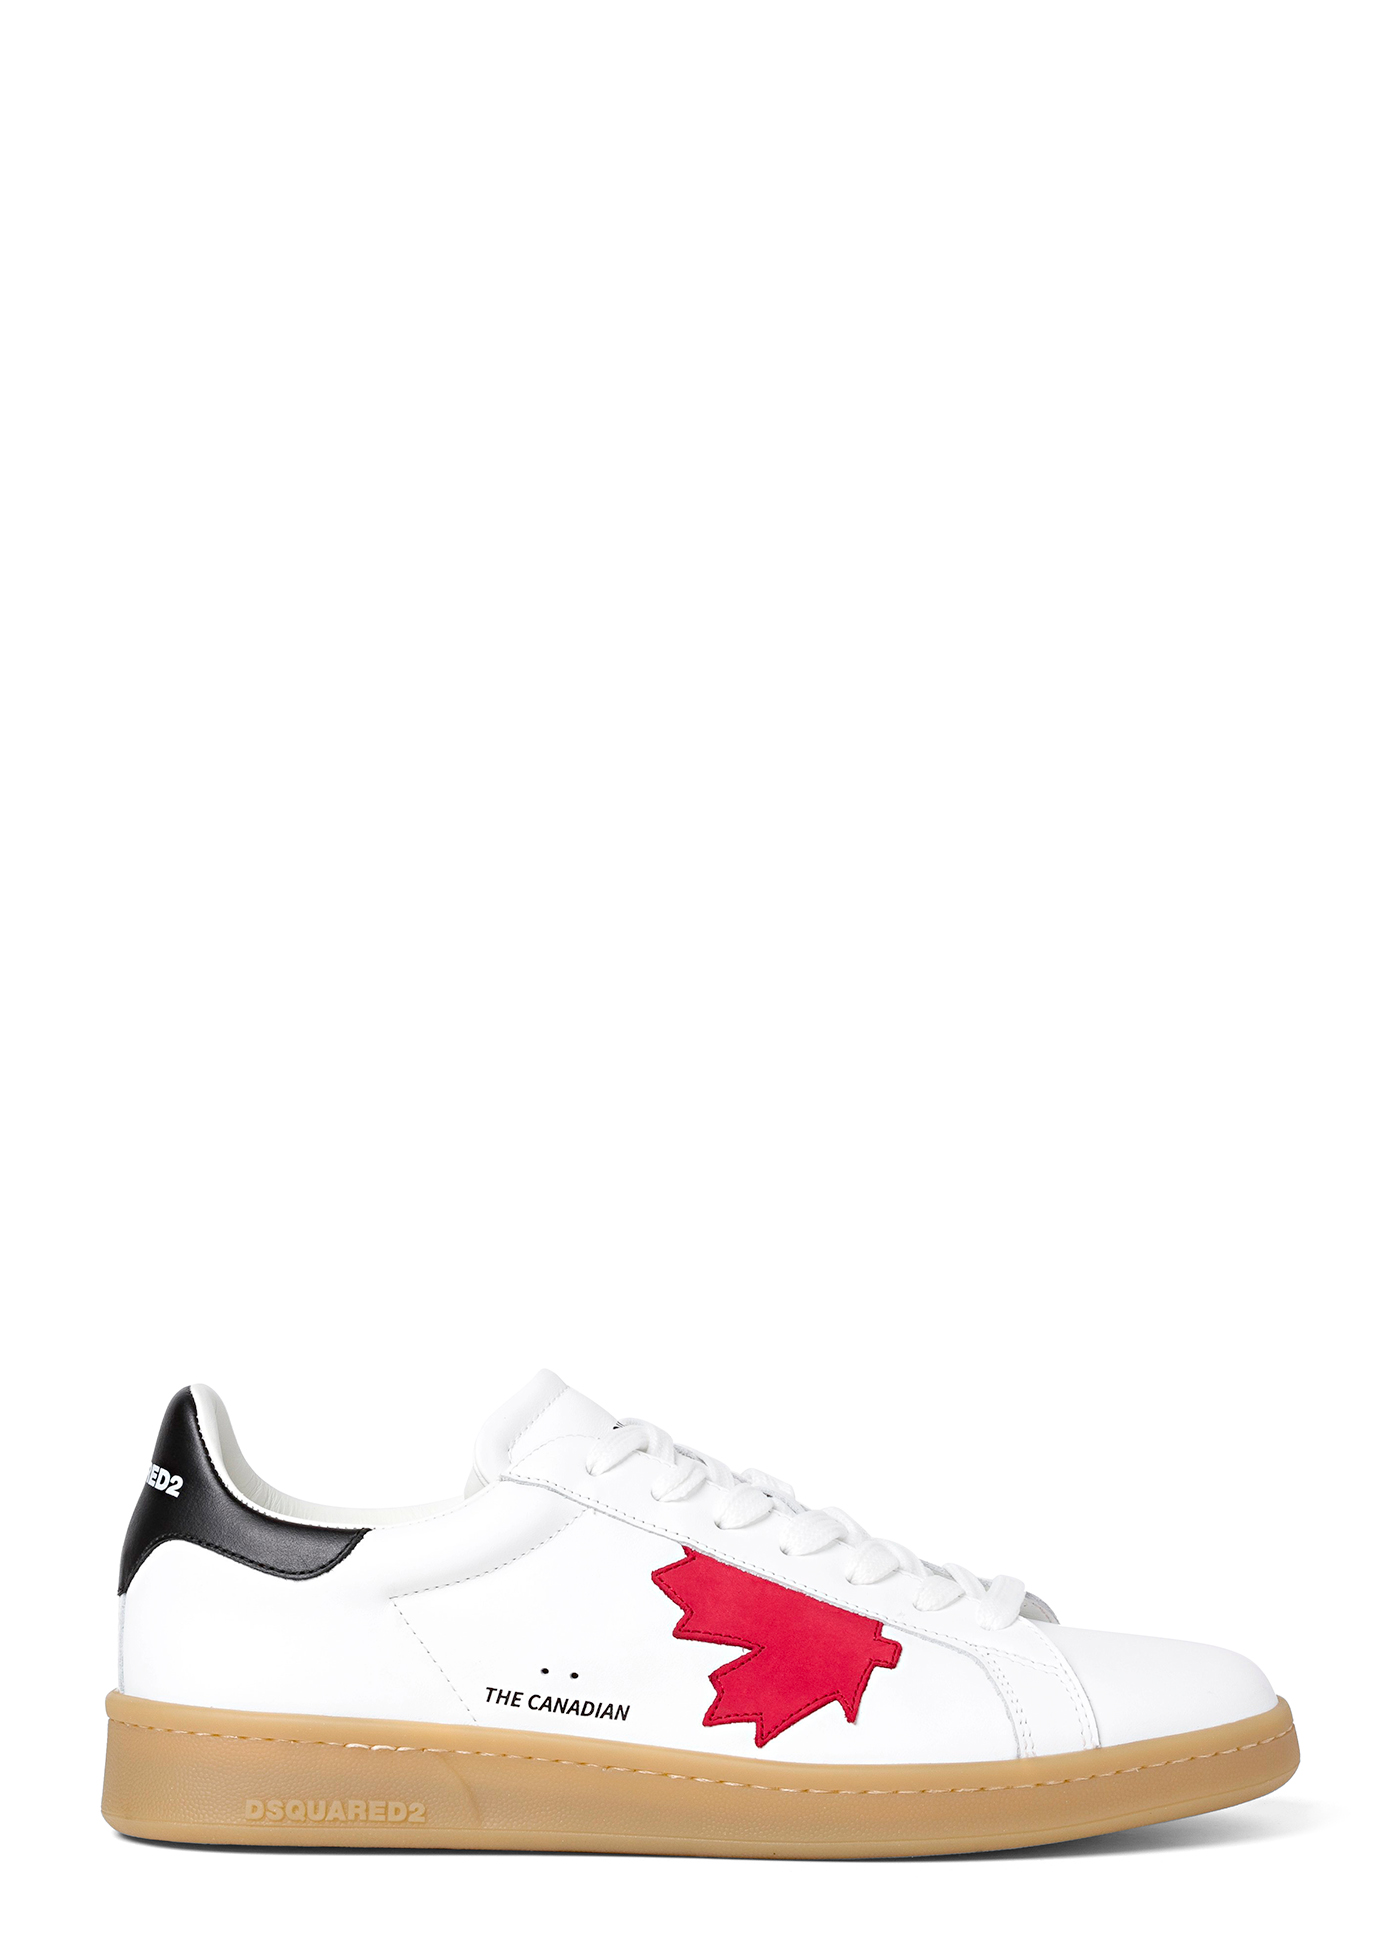 THE CANADIAN SNEAKERS W/ LEAF image number 0